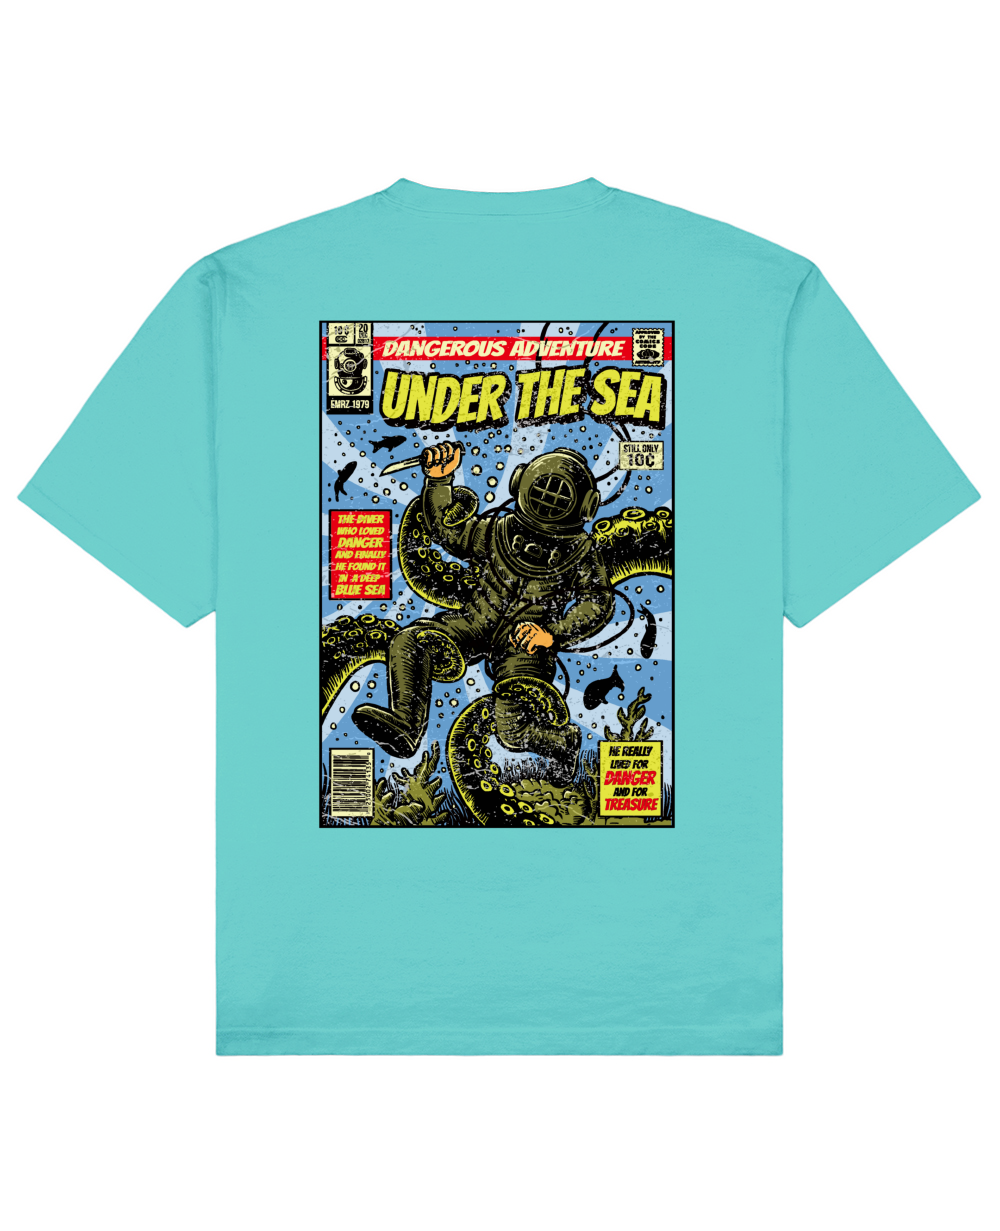 Under The Sea Print T-Shirt in Aqua Blue - T-Shirts - THEYLIVE - BRANMA